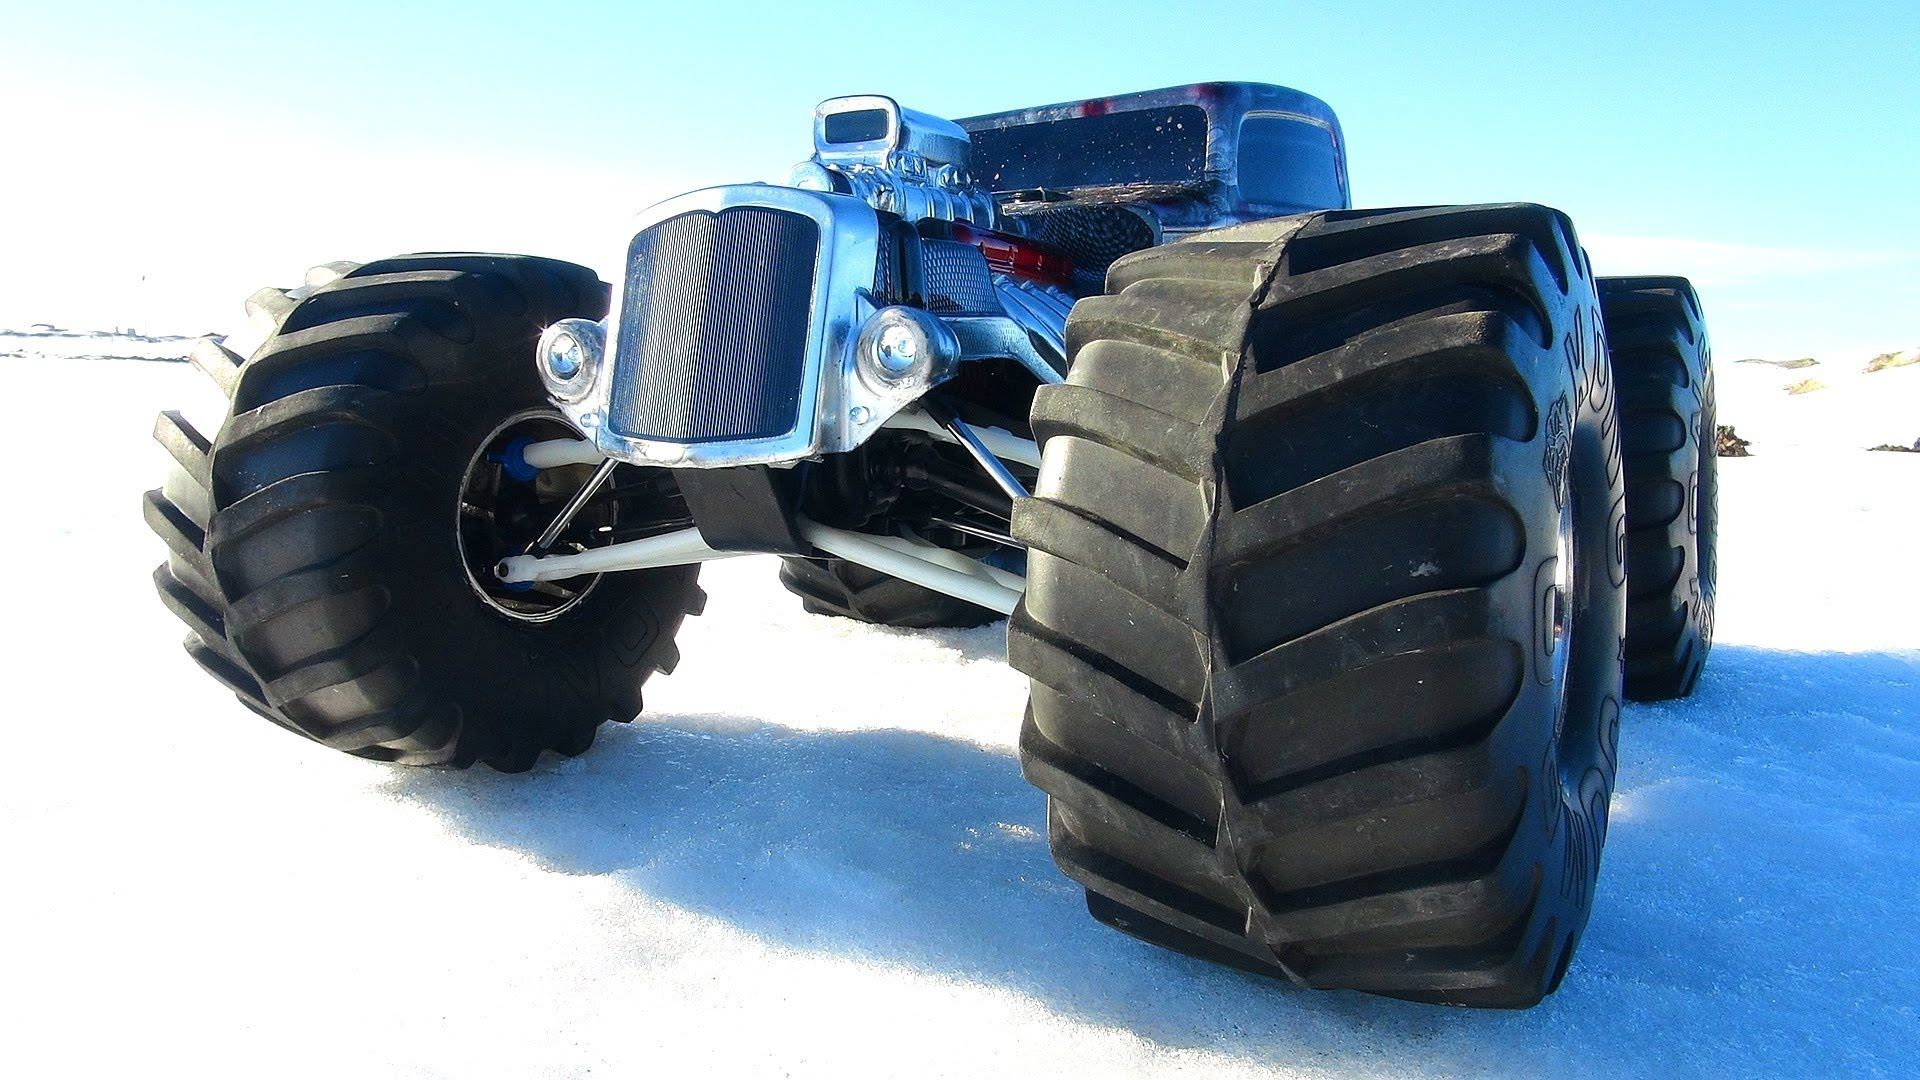 Stampede converted to a truggy Traxxas Remote Control Cars Pinterest